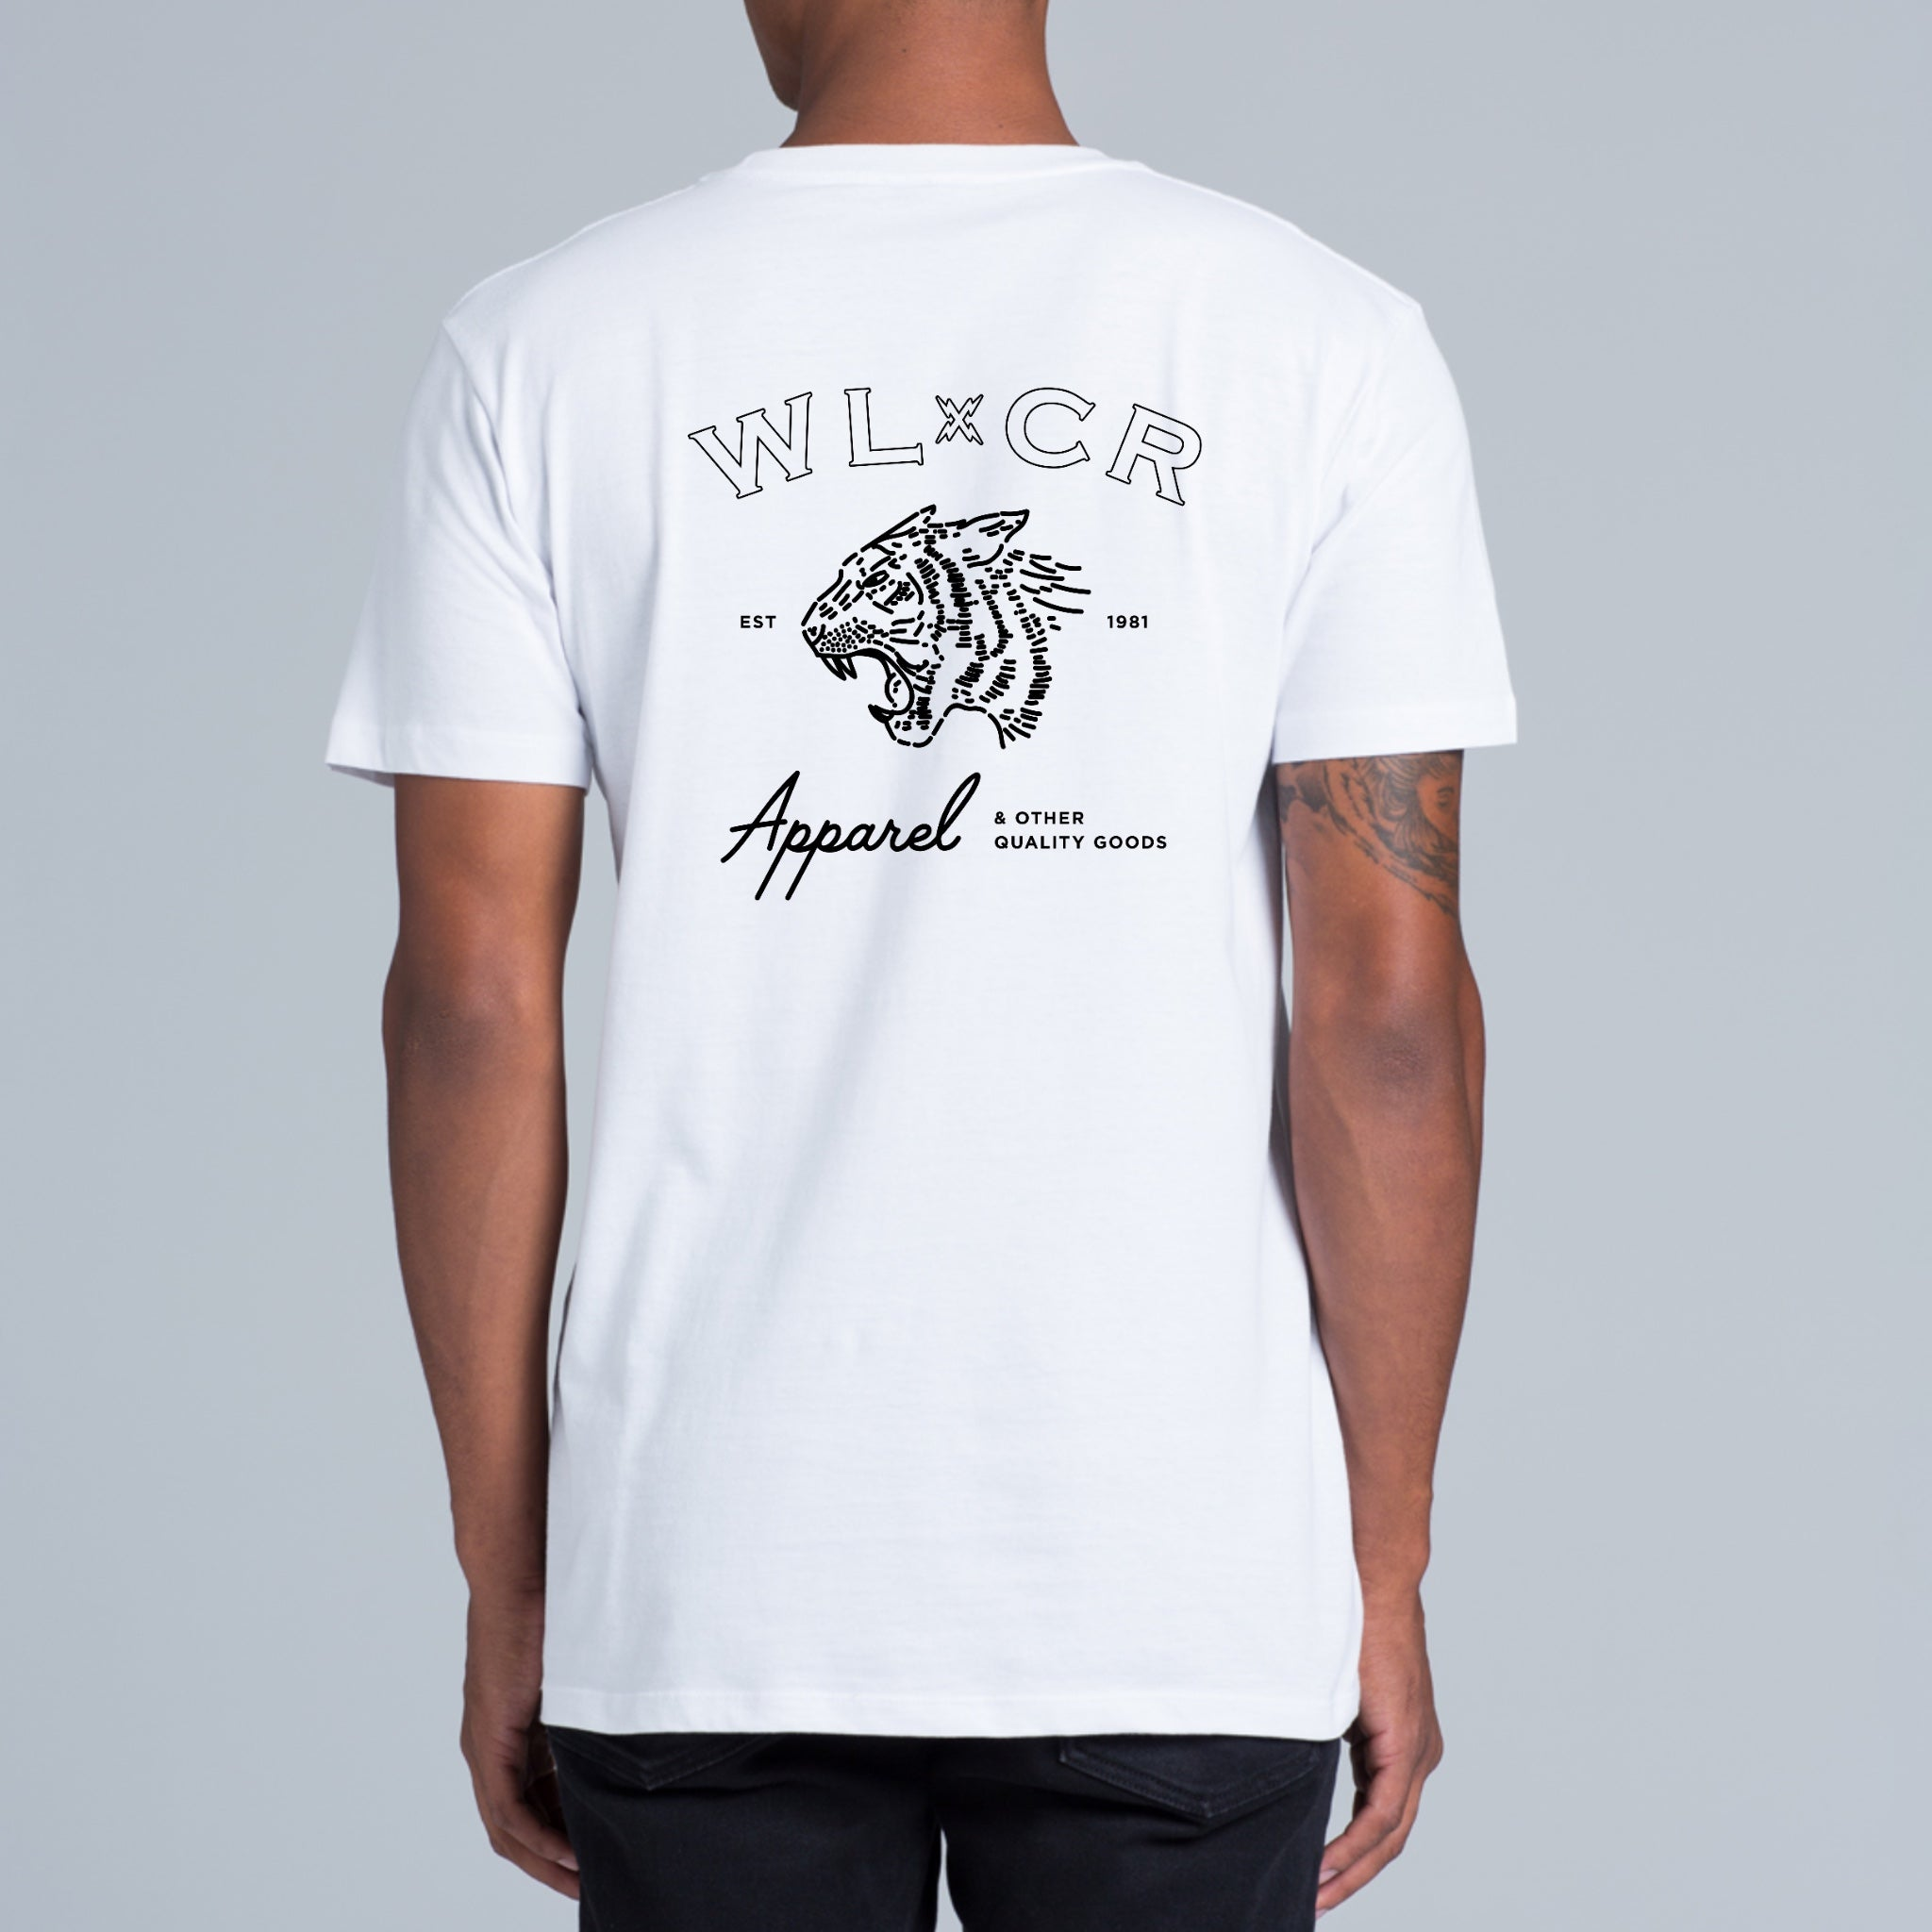 WLCR Easy Tiger T-Shirt - White